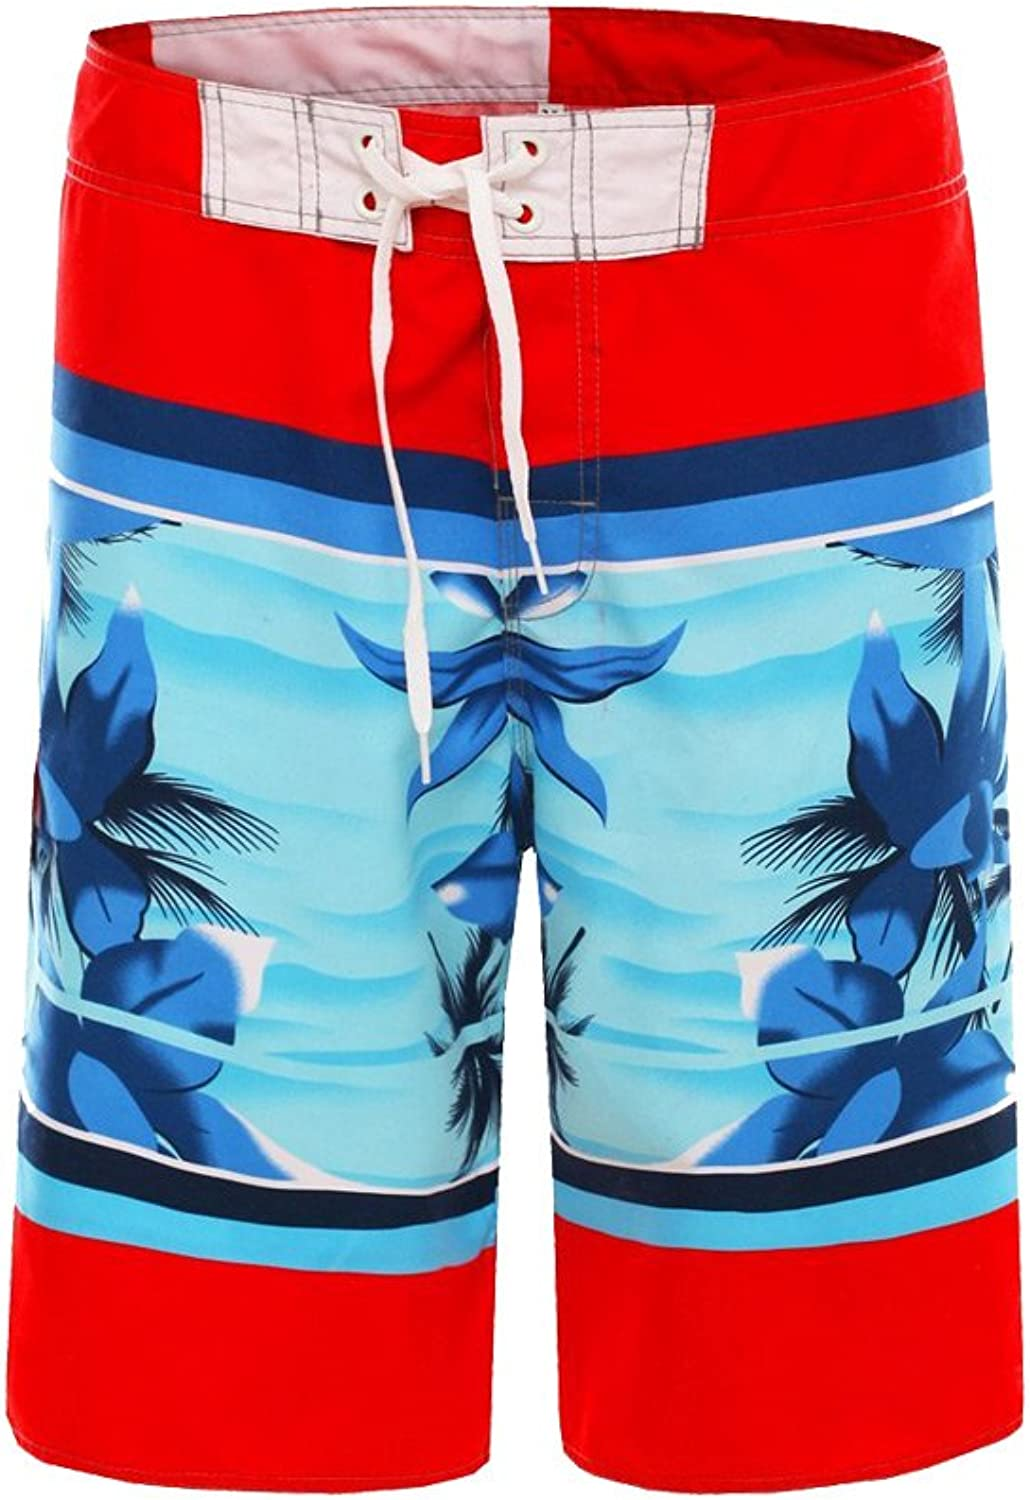 Clothin Outdoor Water Sports Men's Surfing Boardshorts with Pocket